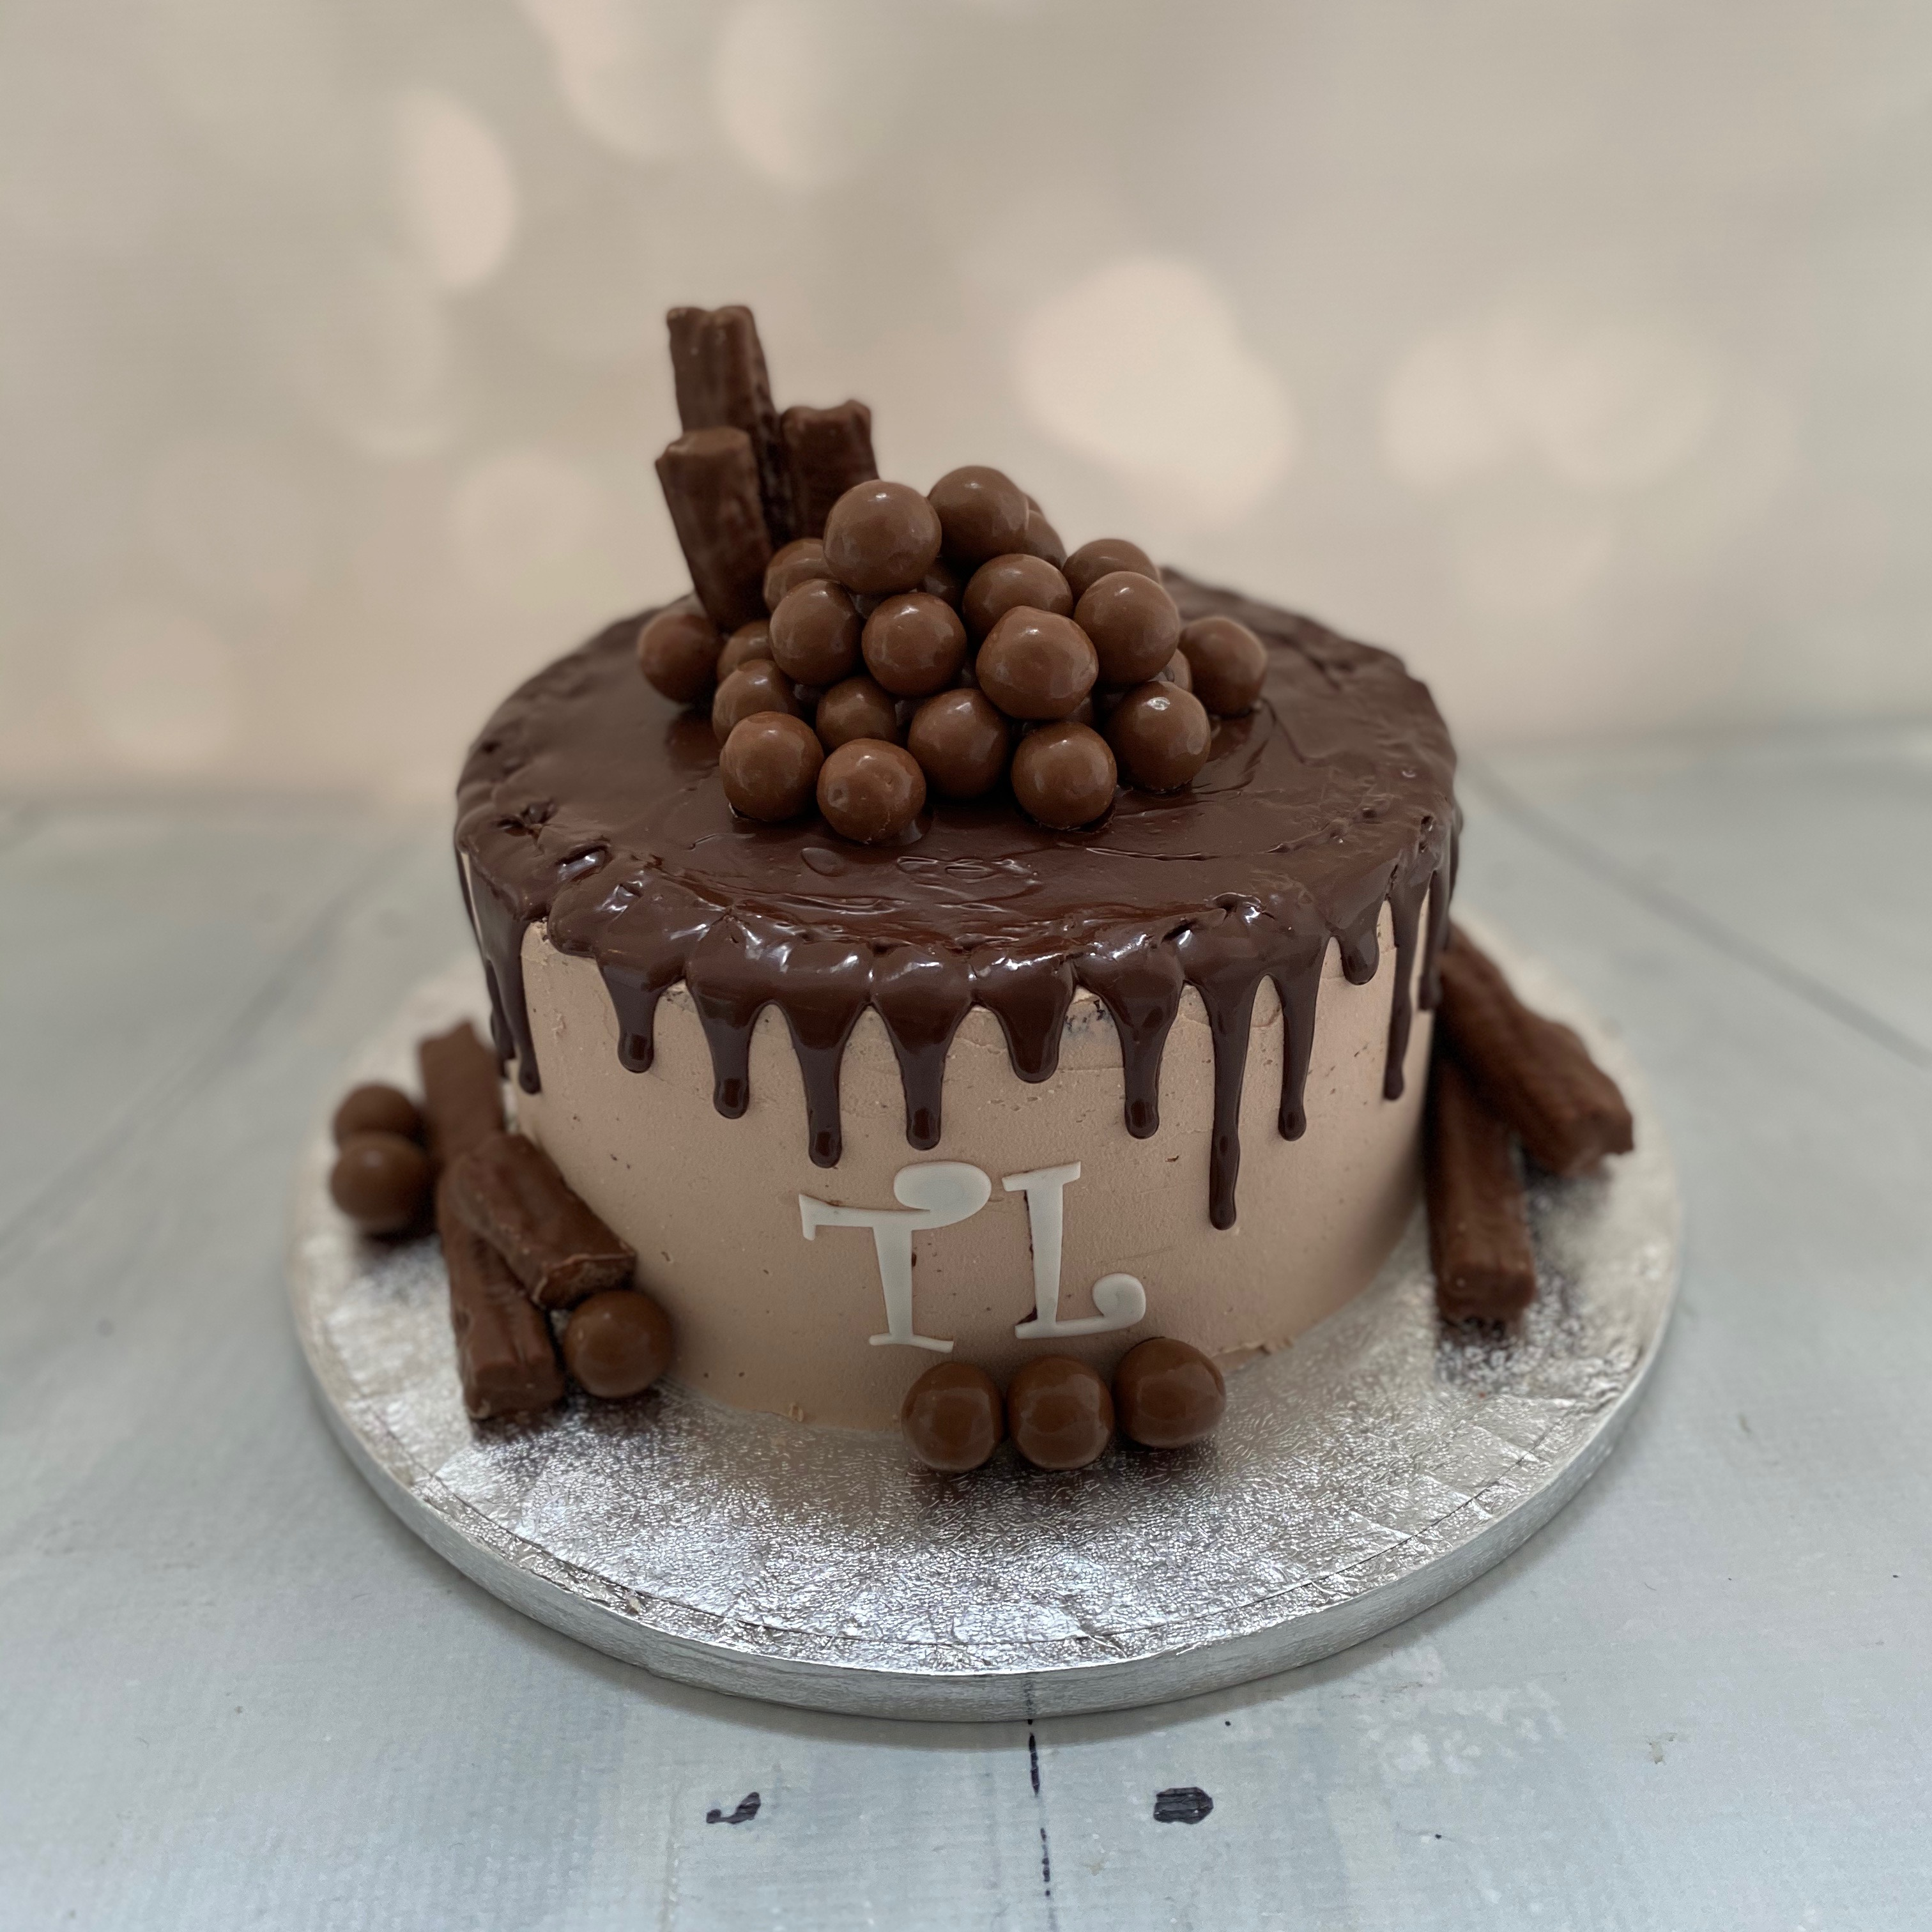 Flake & maltesers chocolate drip cake